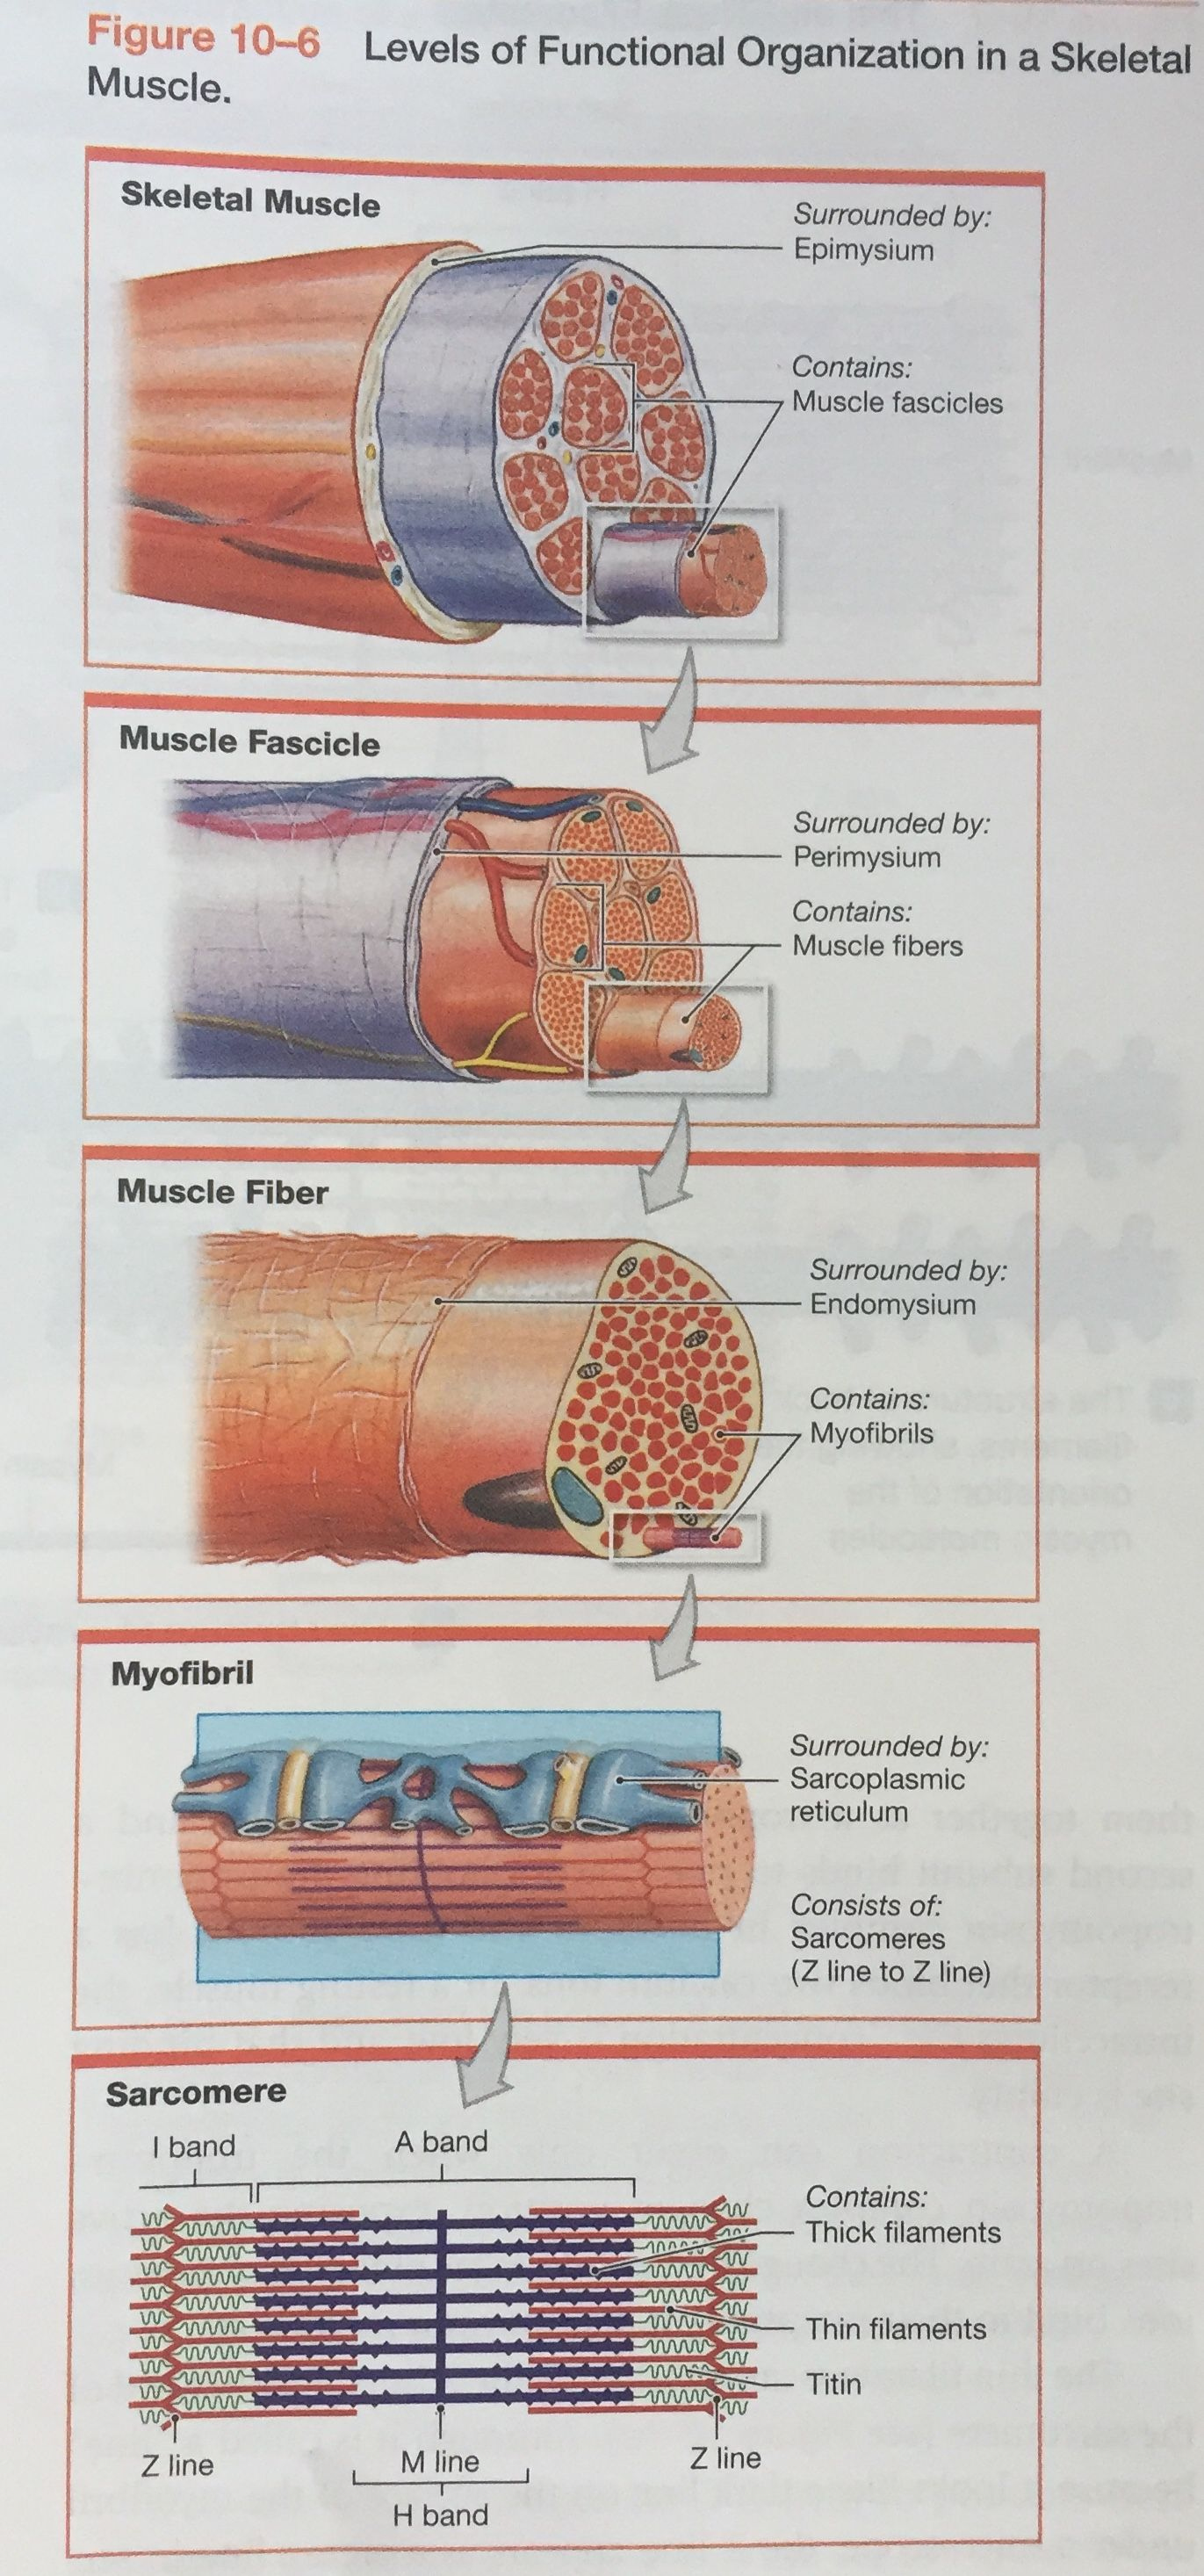 Levels Of Functional Organization In A Skeletal Muscle Fundamentals Of A P Pearson Skeletal Muscle College Algebra Anatomy And Physiology